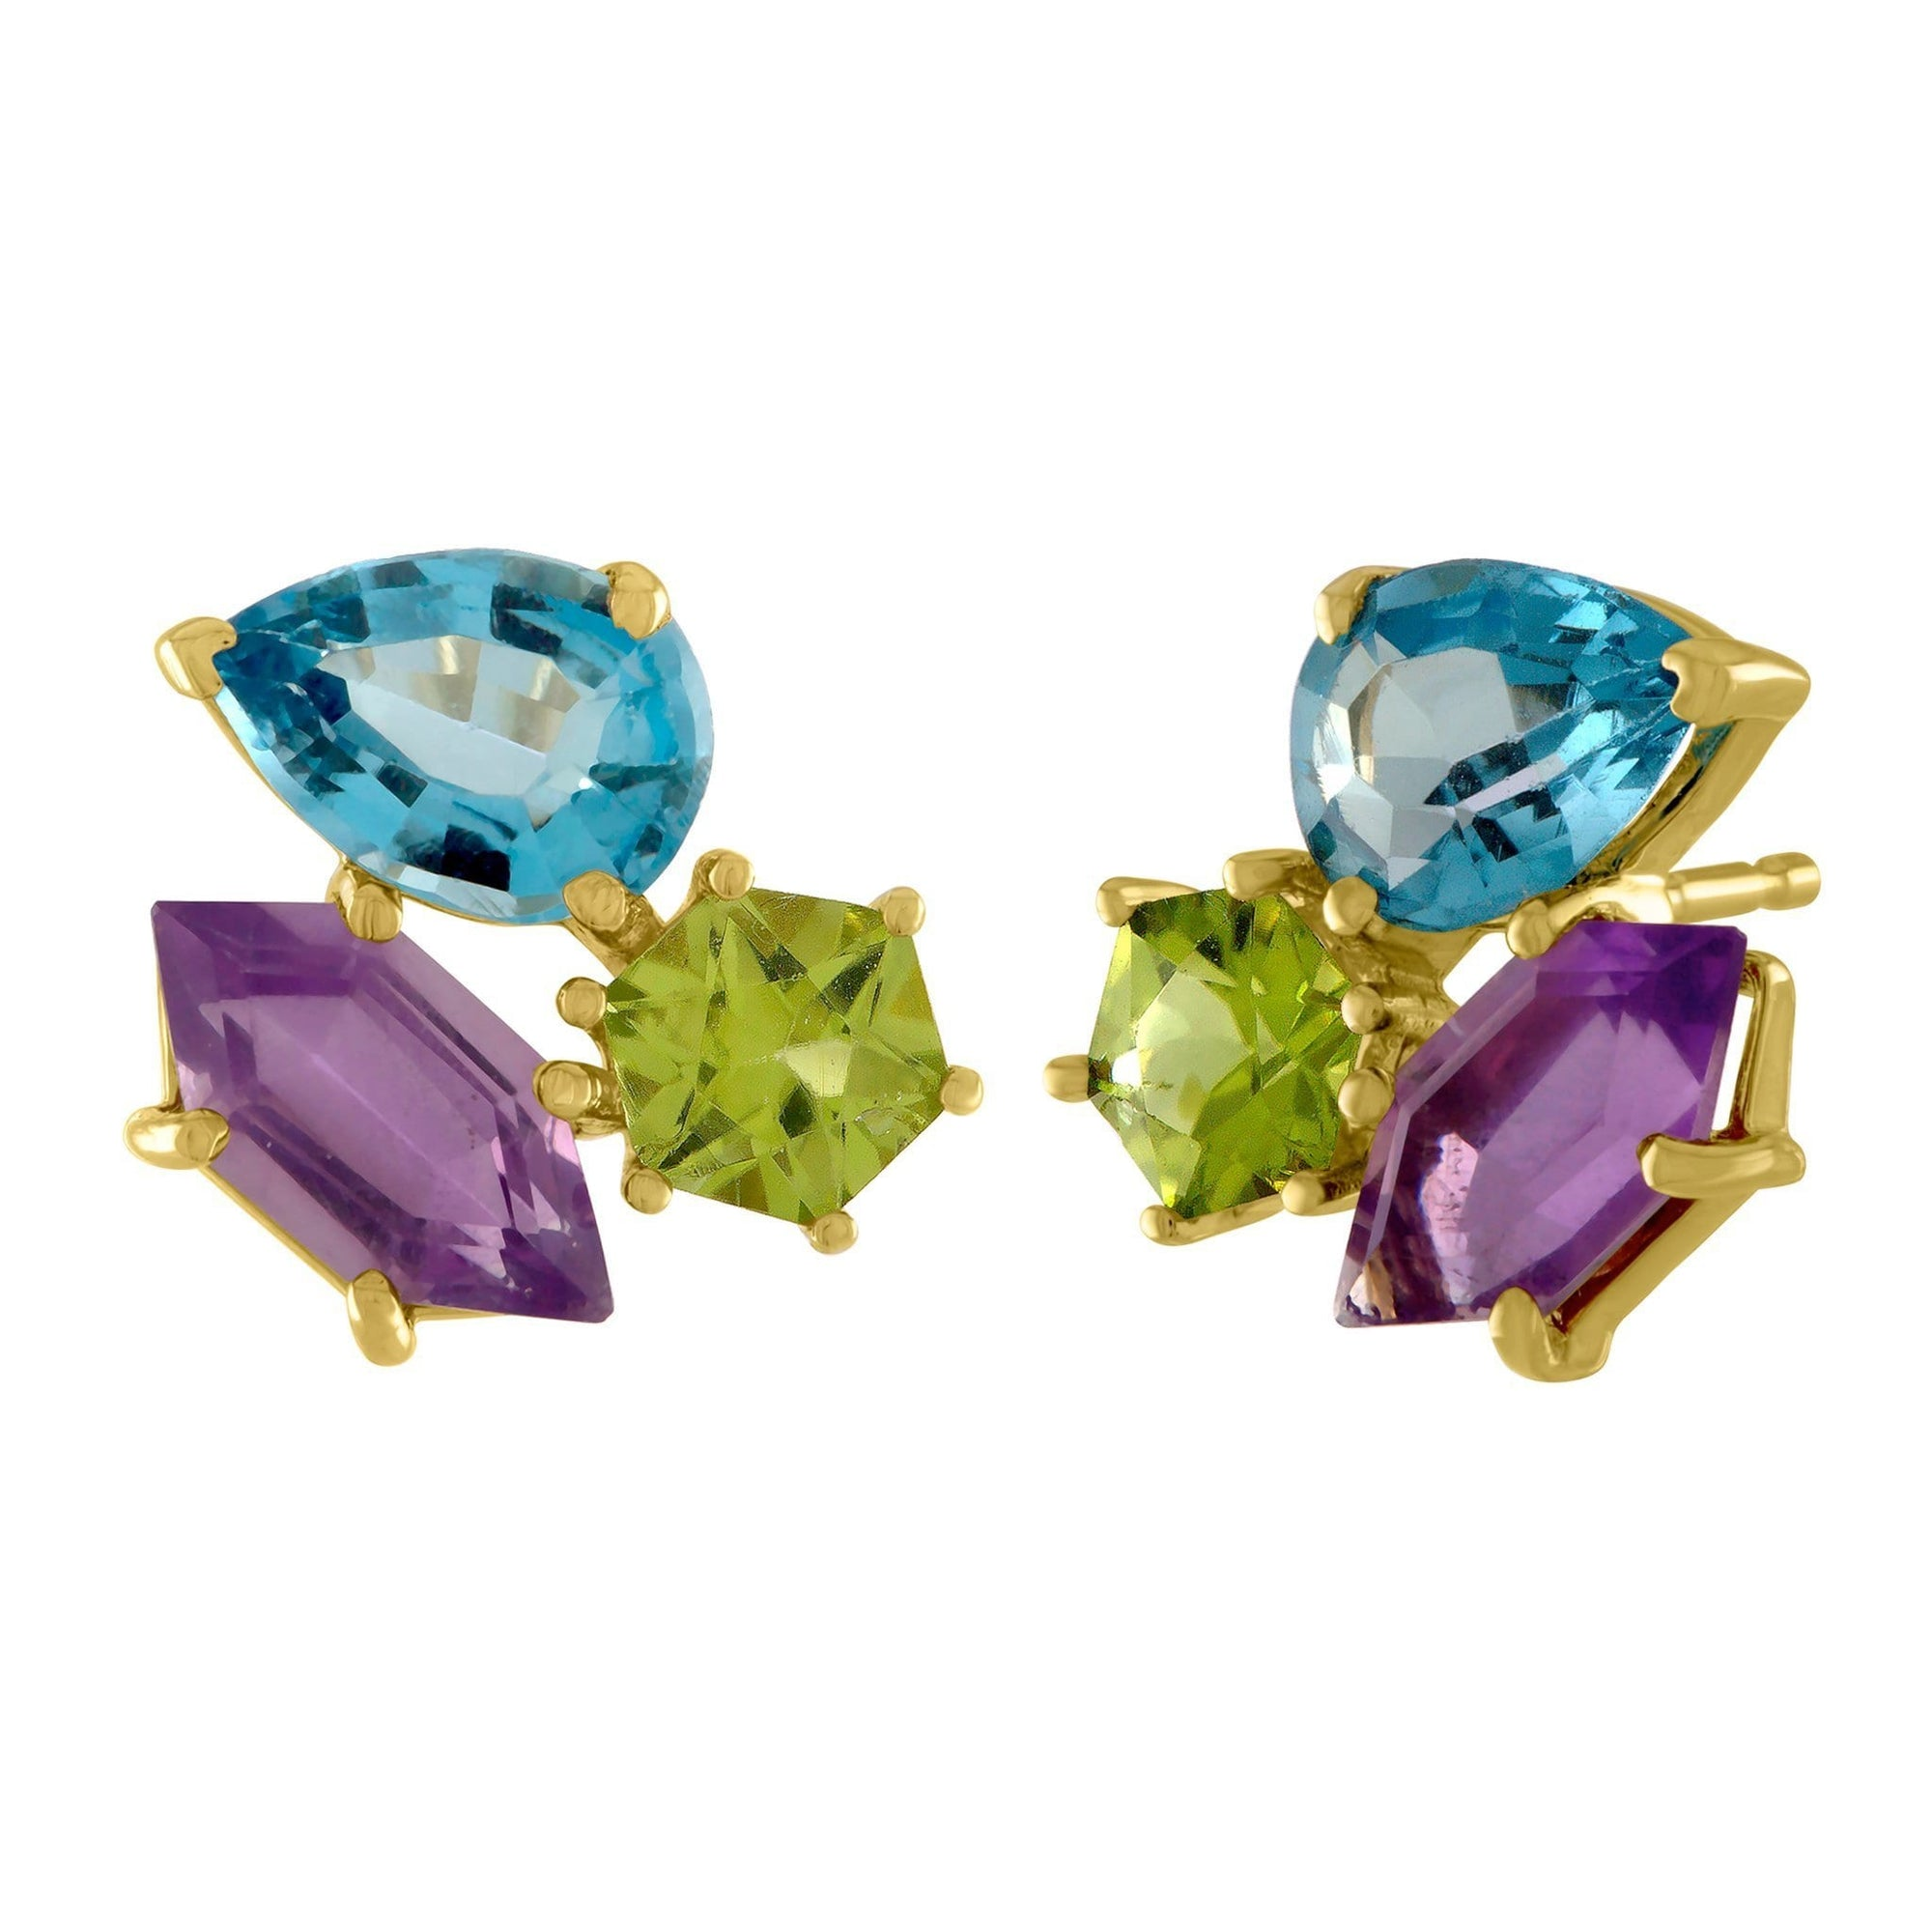 Candyland Stud Earrings: 14k Gold, Peridot, London Blue Topaz, Amethyst Kites